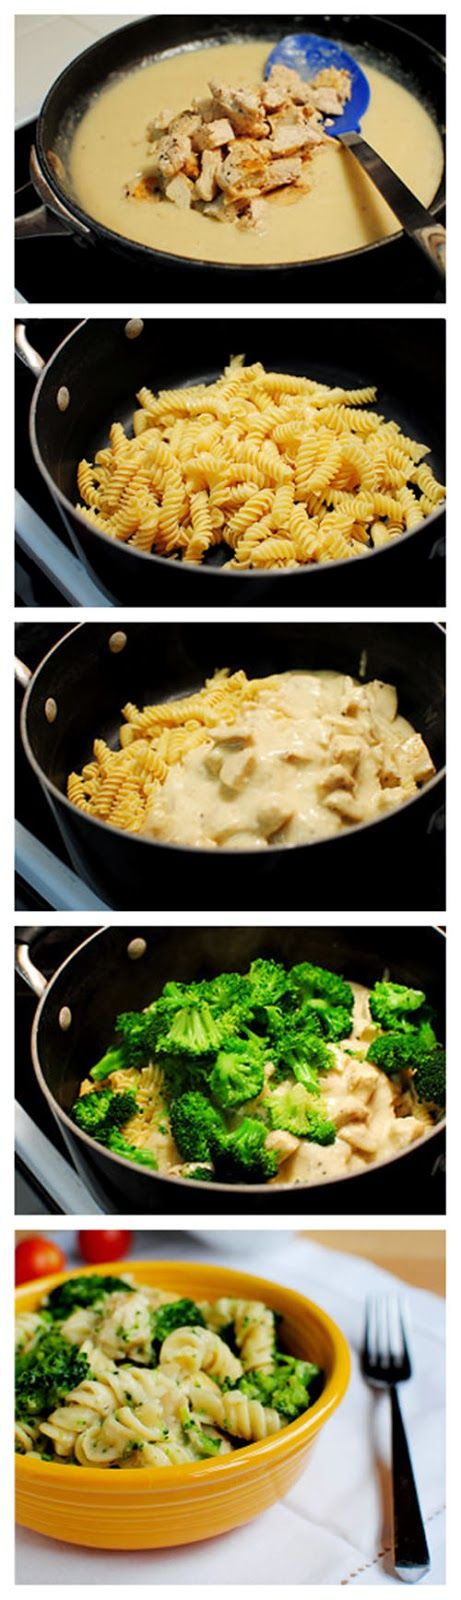 nike shox for men Skinny Chicken Broccoli Alfredo Recipe    my tweak adaptations      skip pasta and sub in sauted fresh mushrooms